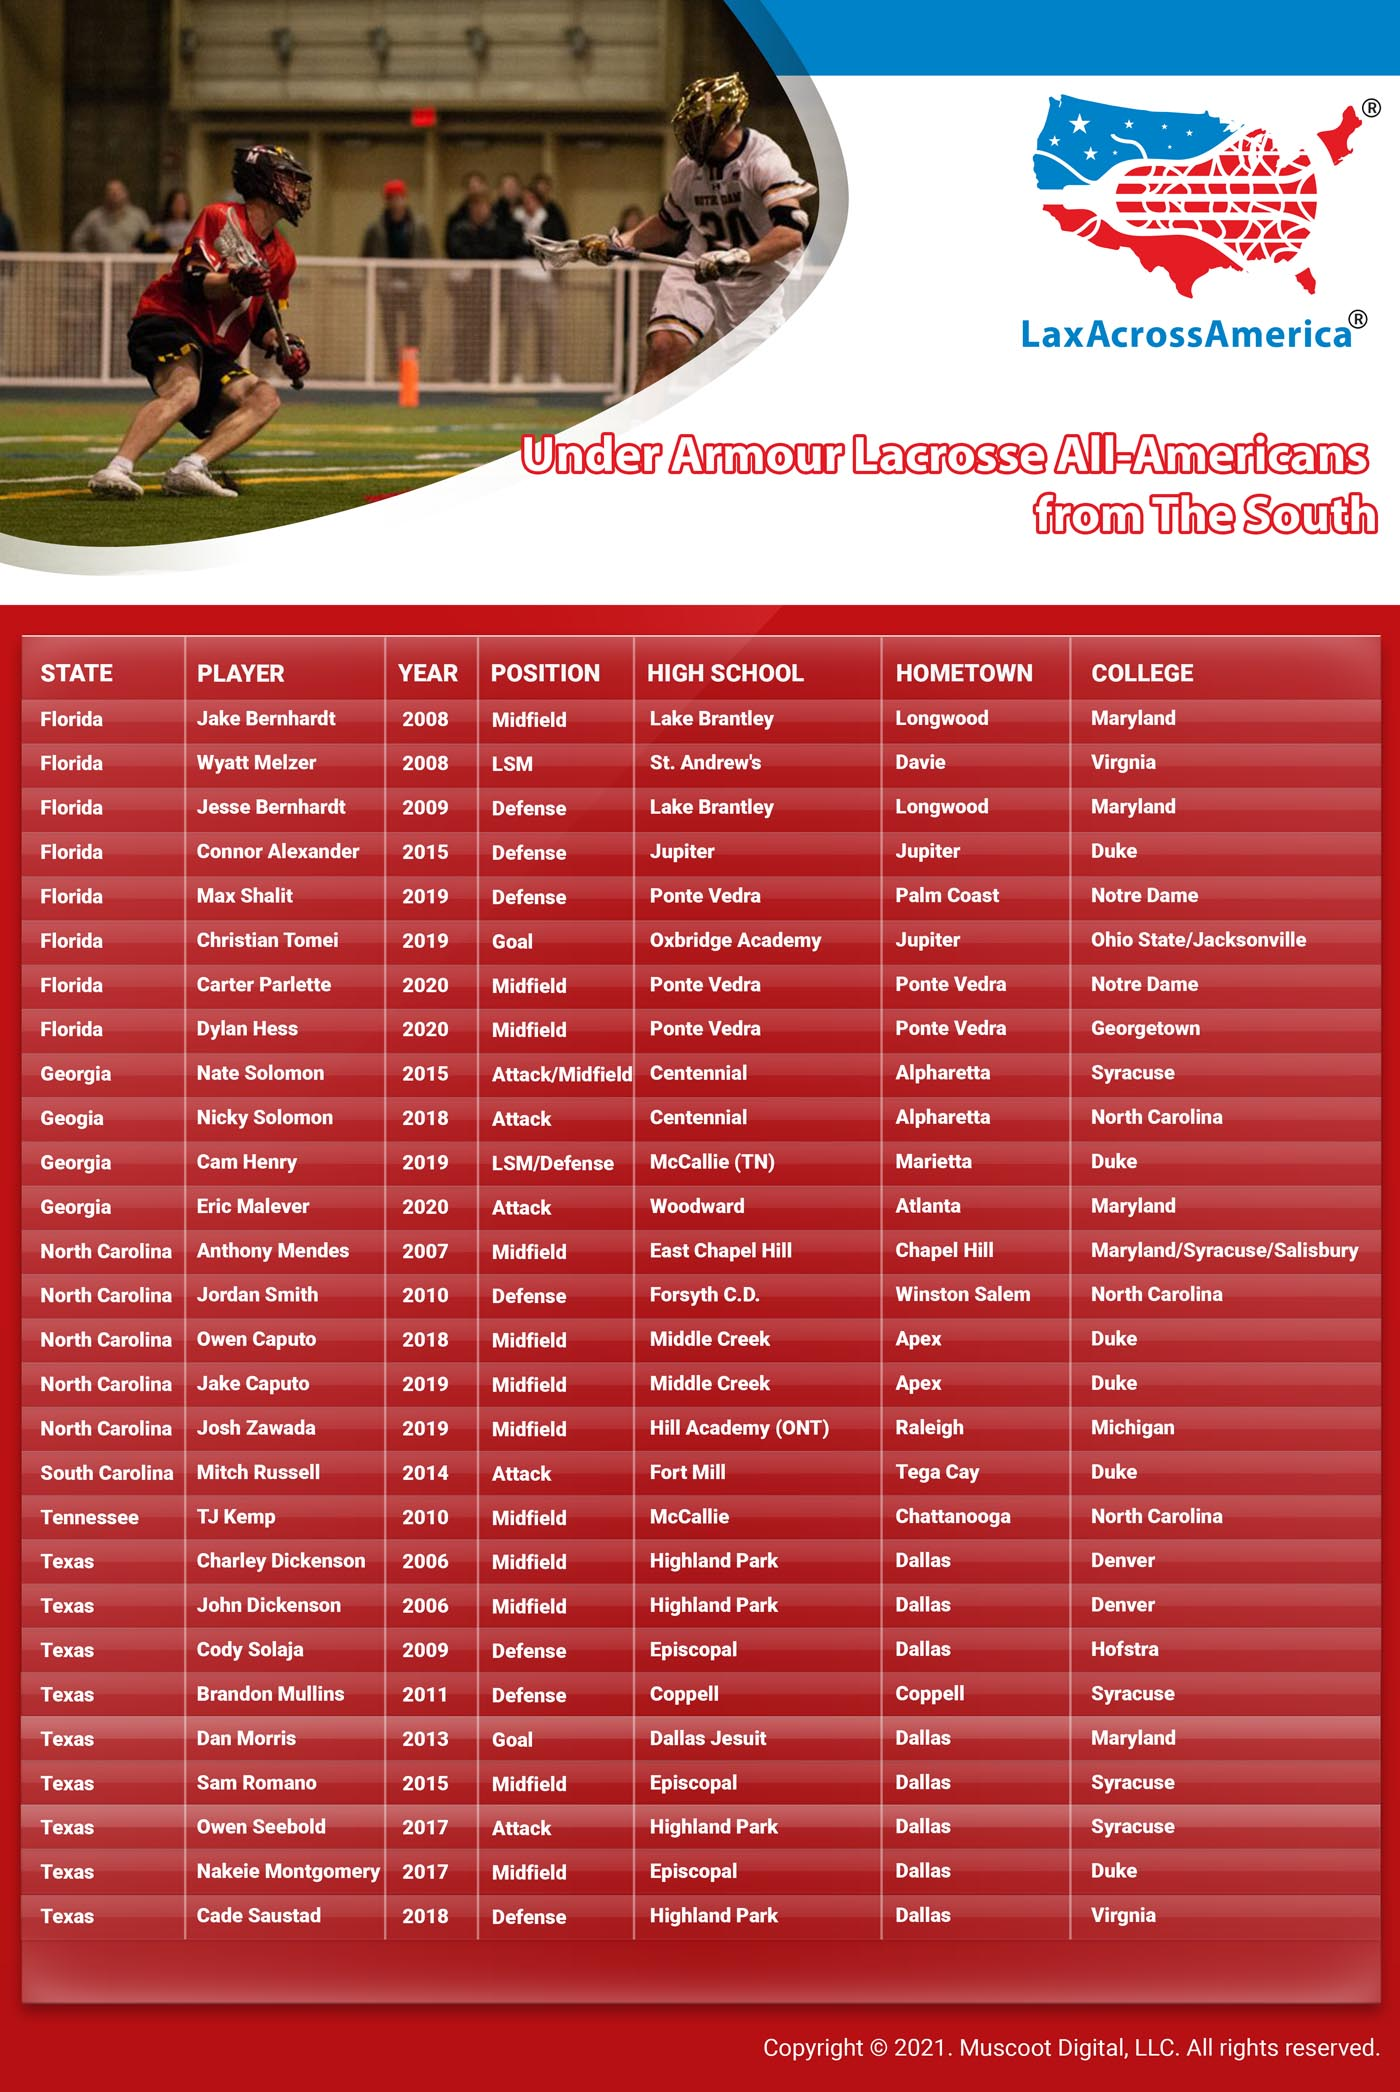 Under Armour Lacrosse All-Americans from The South